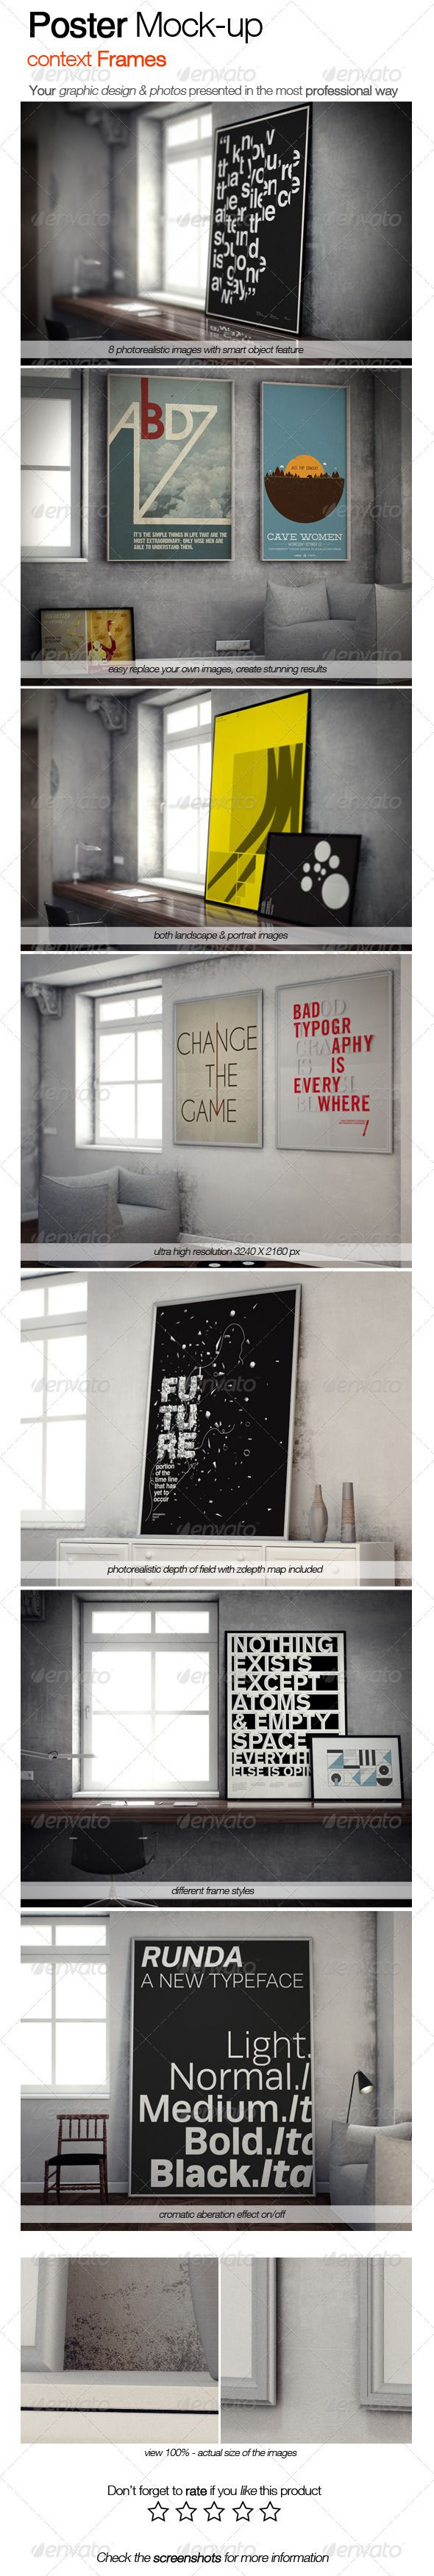 30 best graphics images on pinterest font logo fonts and script fonts poster mock up context frames fandeluxe Image collections